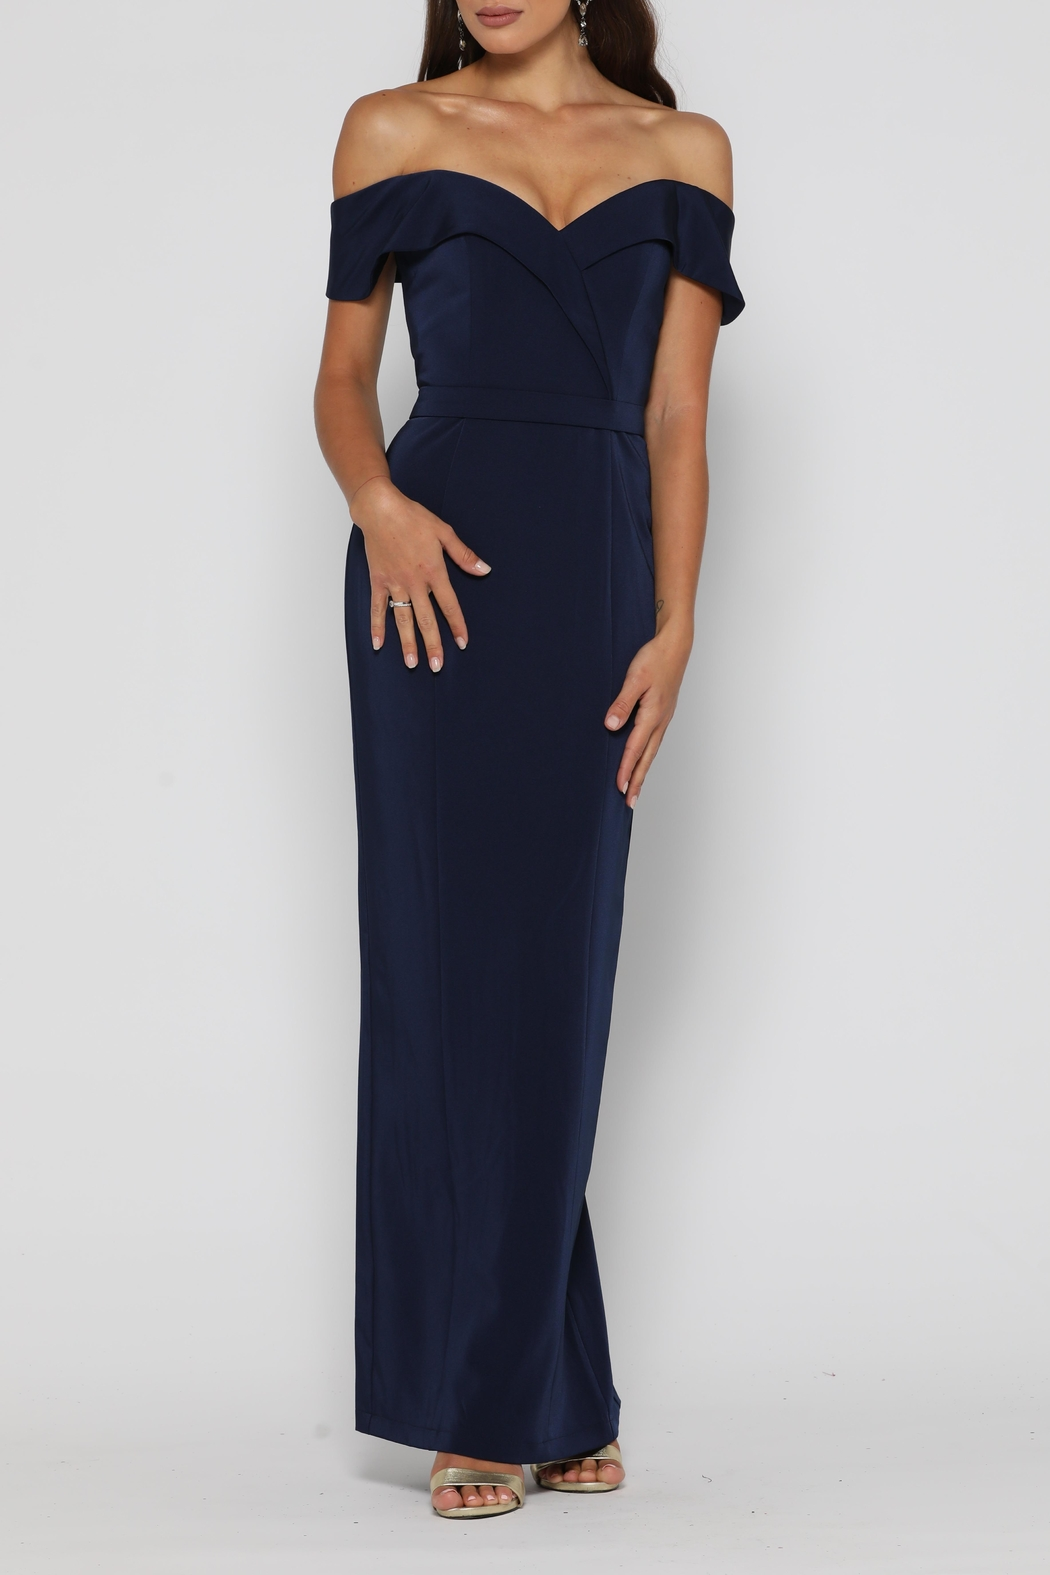 YSS the Label Paris Dress Navy - Front Full Image